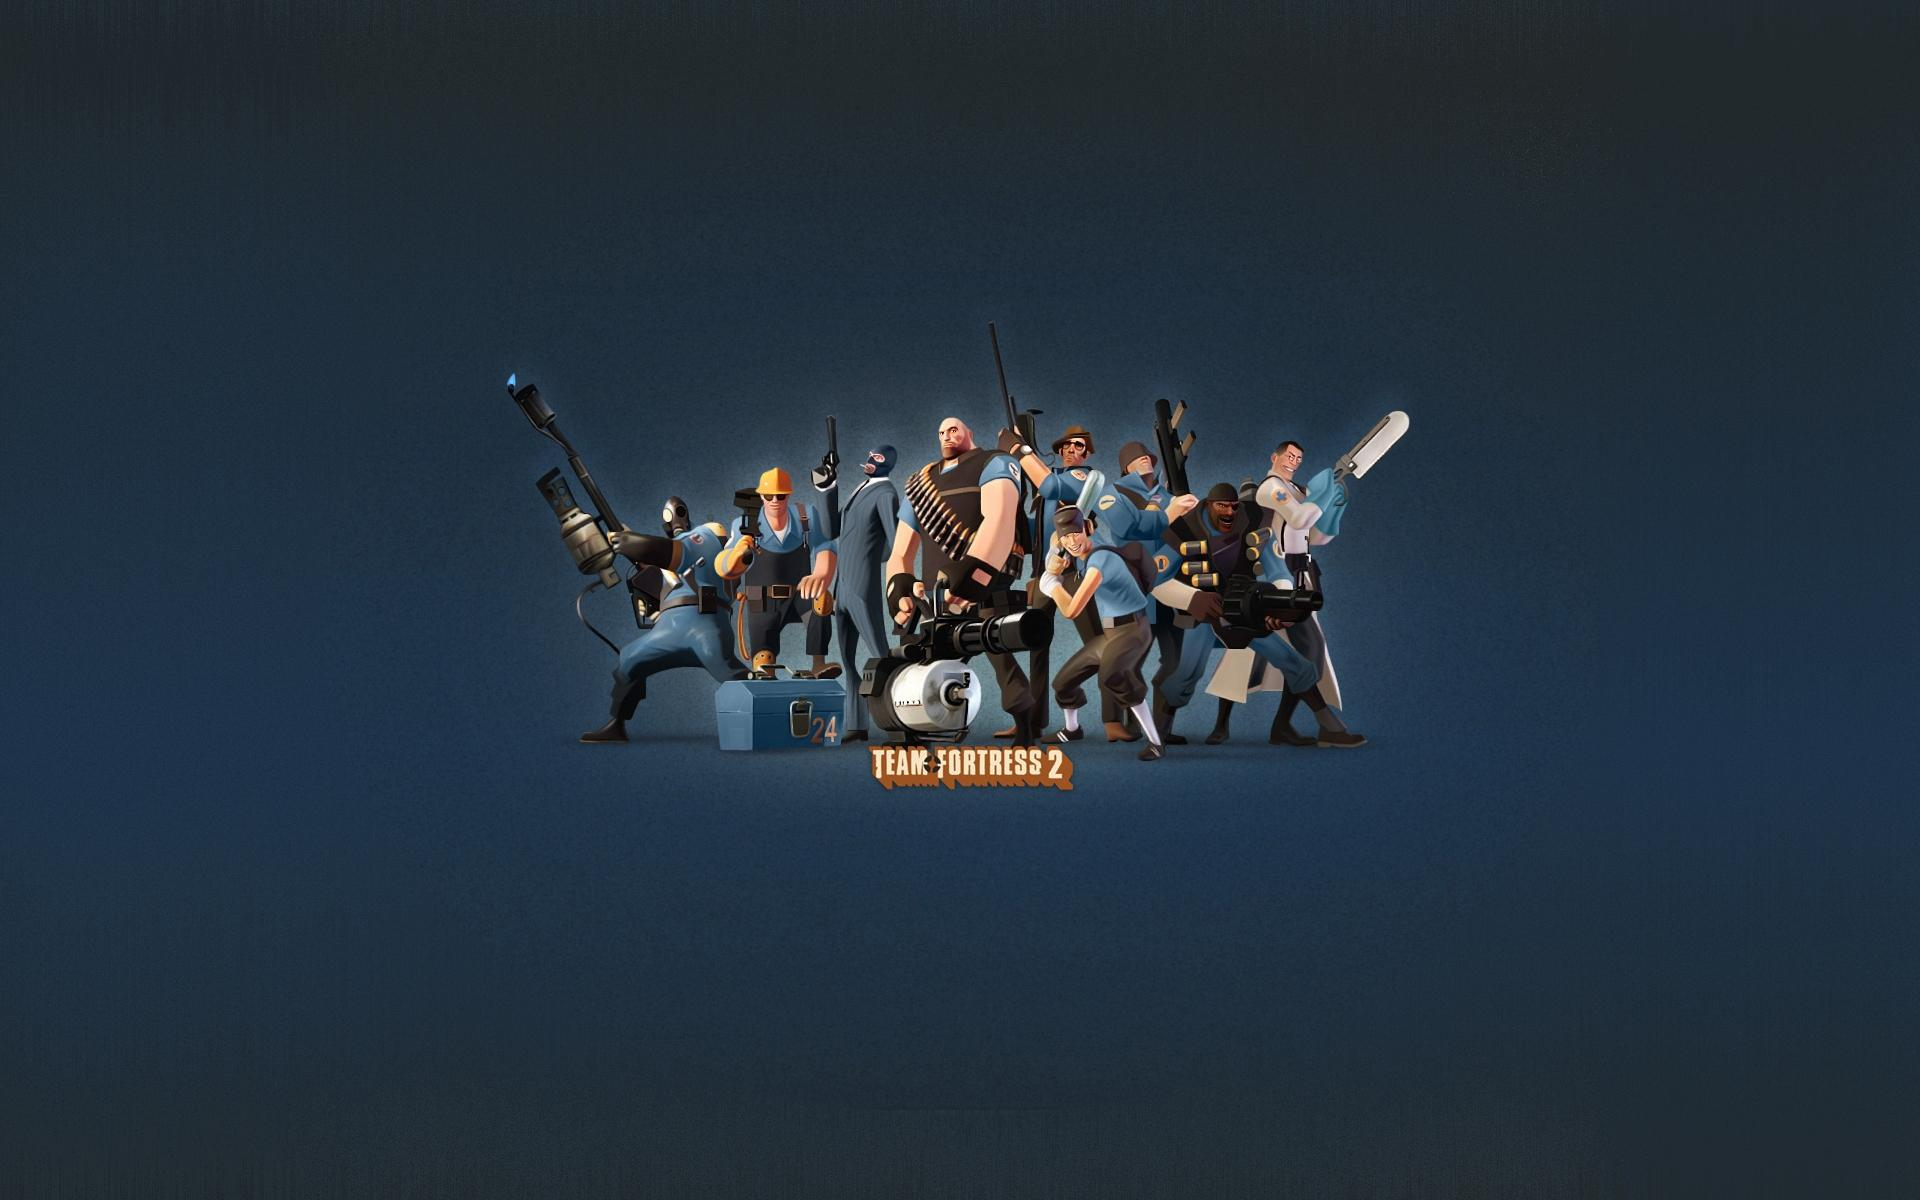 Обои Team Fortress 2 - вся команда 1920x1200